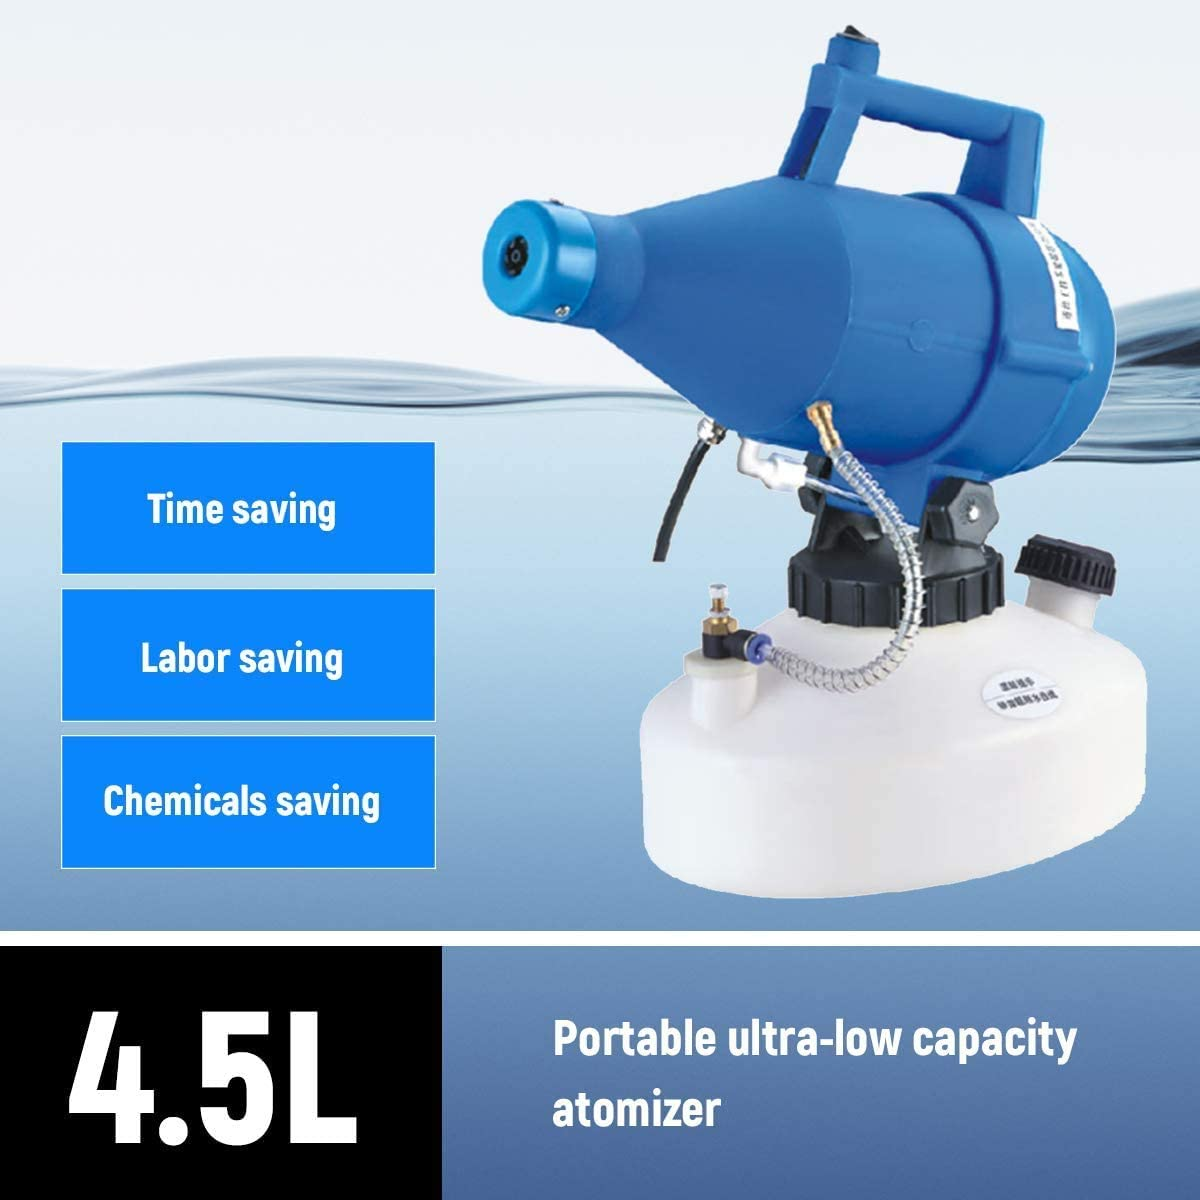 Decdeal Electric ULV Fogger Portable Ultra-Low Volume Atomizer Sprayer Fine Mist Blower Pesticide Nebulizer 4.5L by Accredity Lab + 1 Disinfectant Cleaner Free - 2071MALL